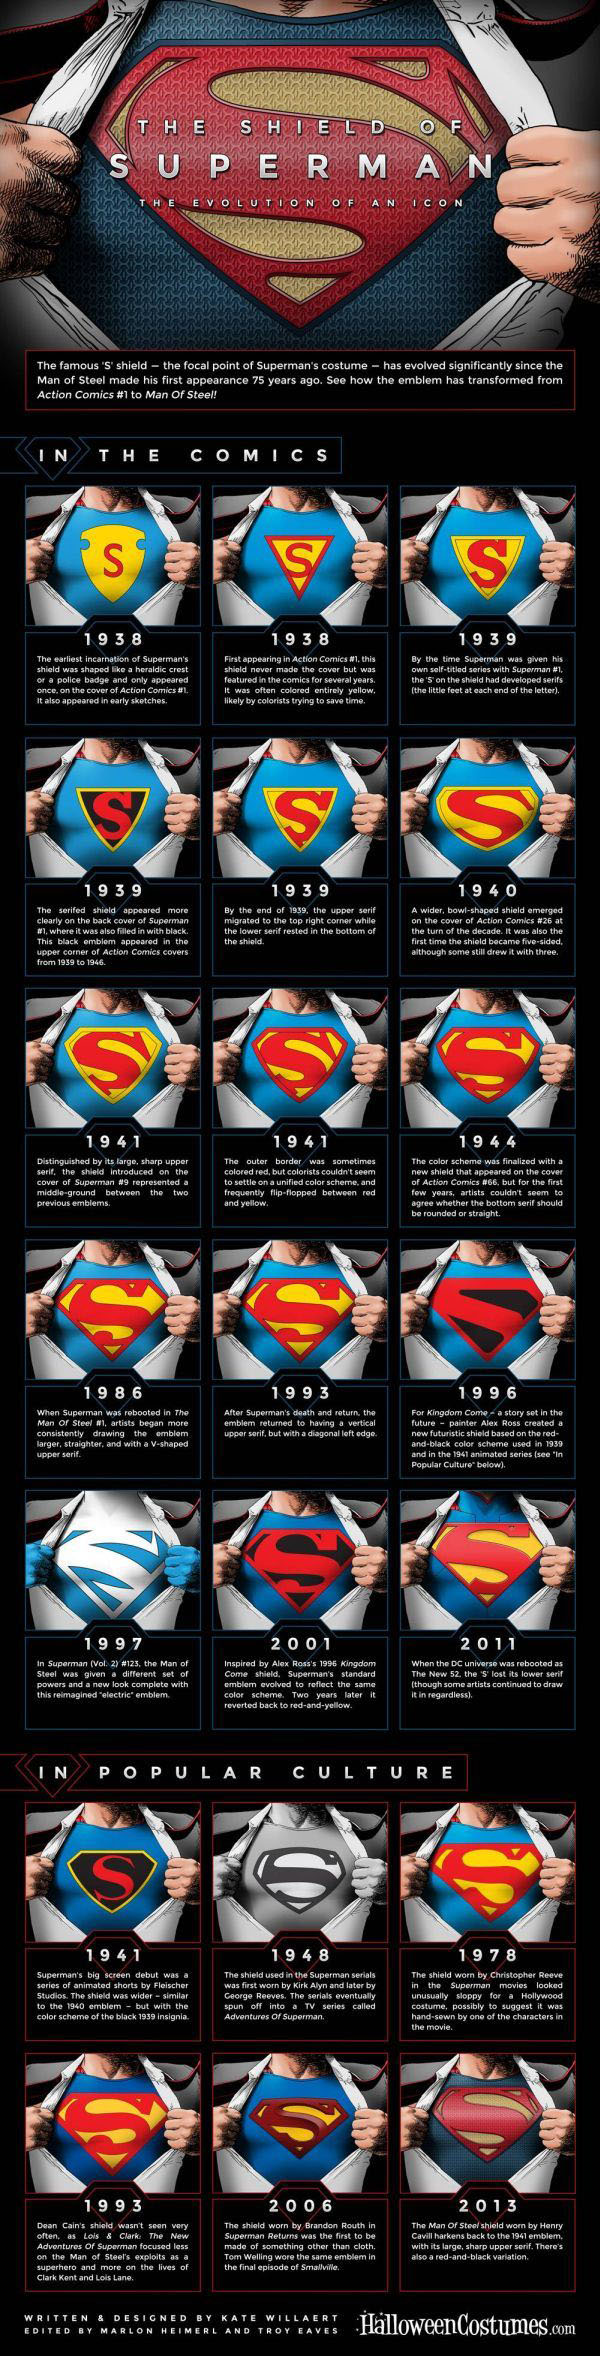 evolucion del escudo de superman